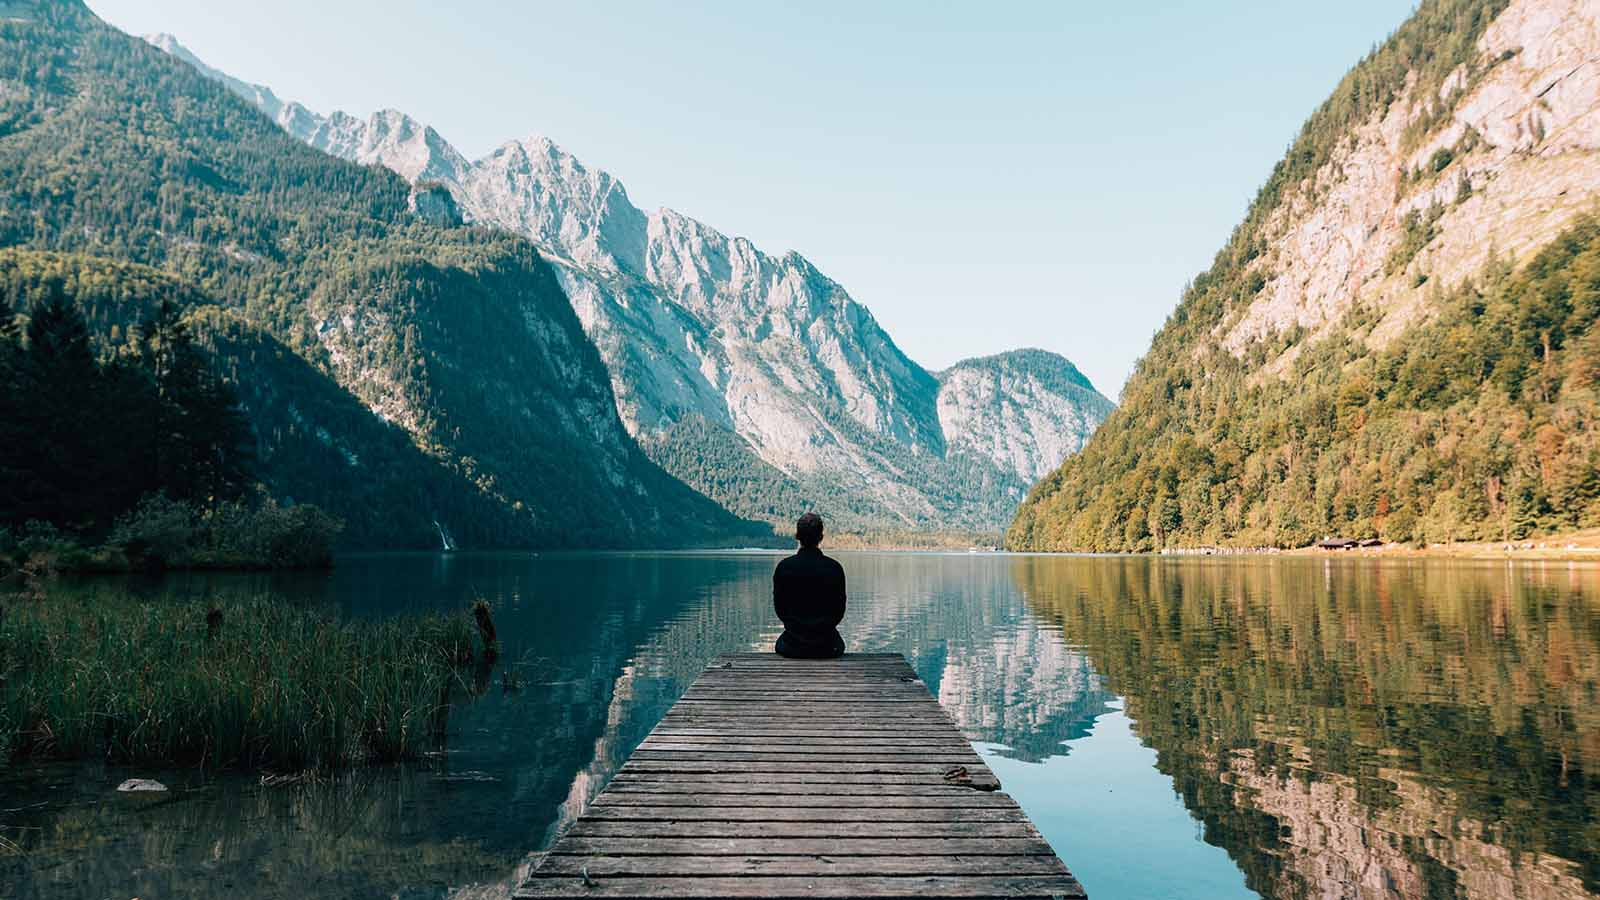 Man looking reflective over lake and mountains landscape.